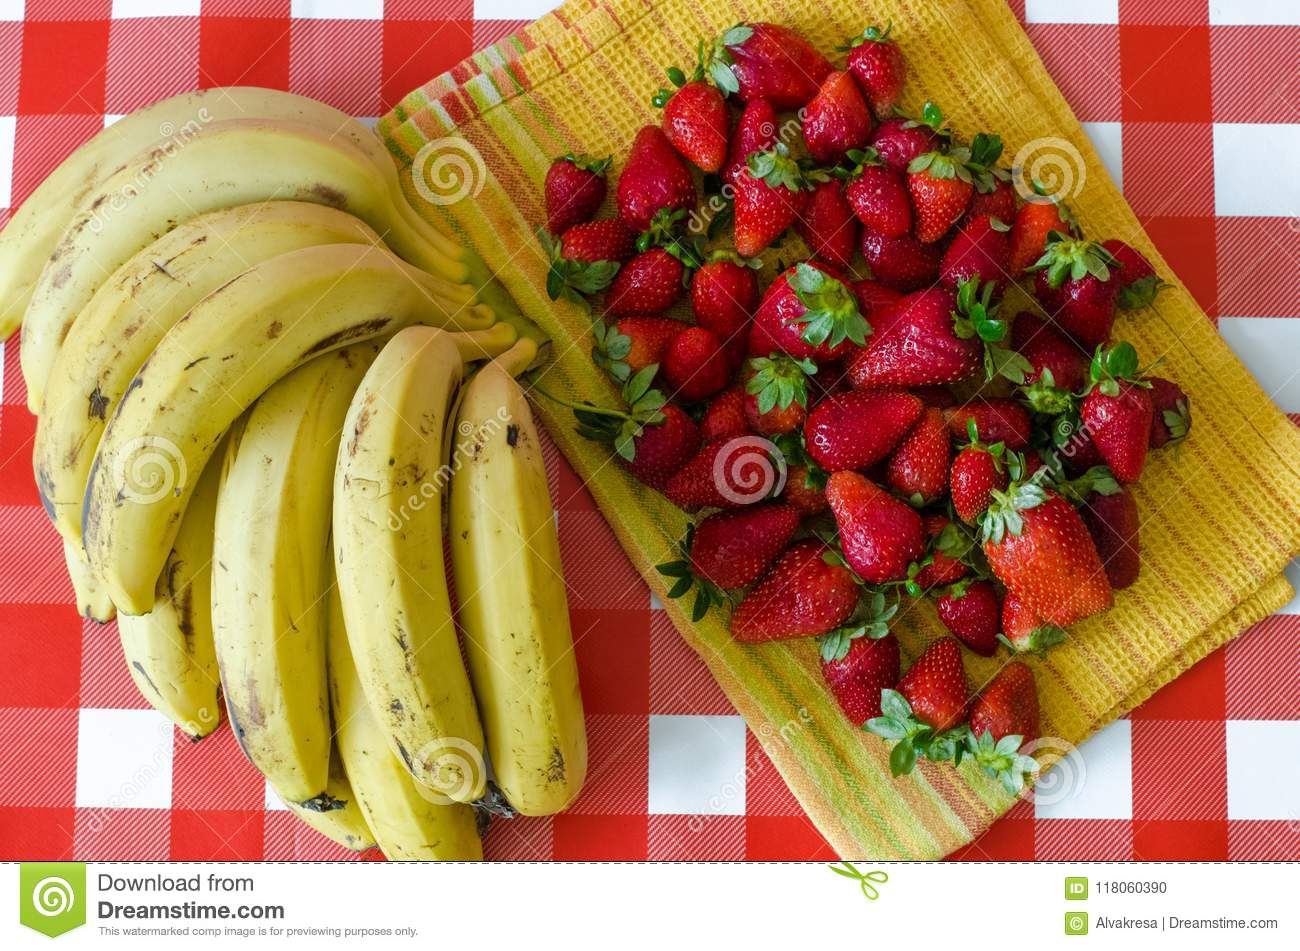 Summer fruits from Israel market, a lot of ripe strawberries and big bunch of yellow bananas